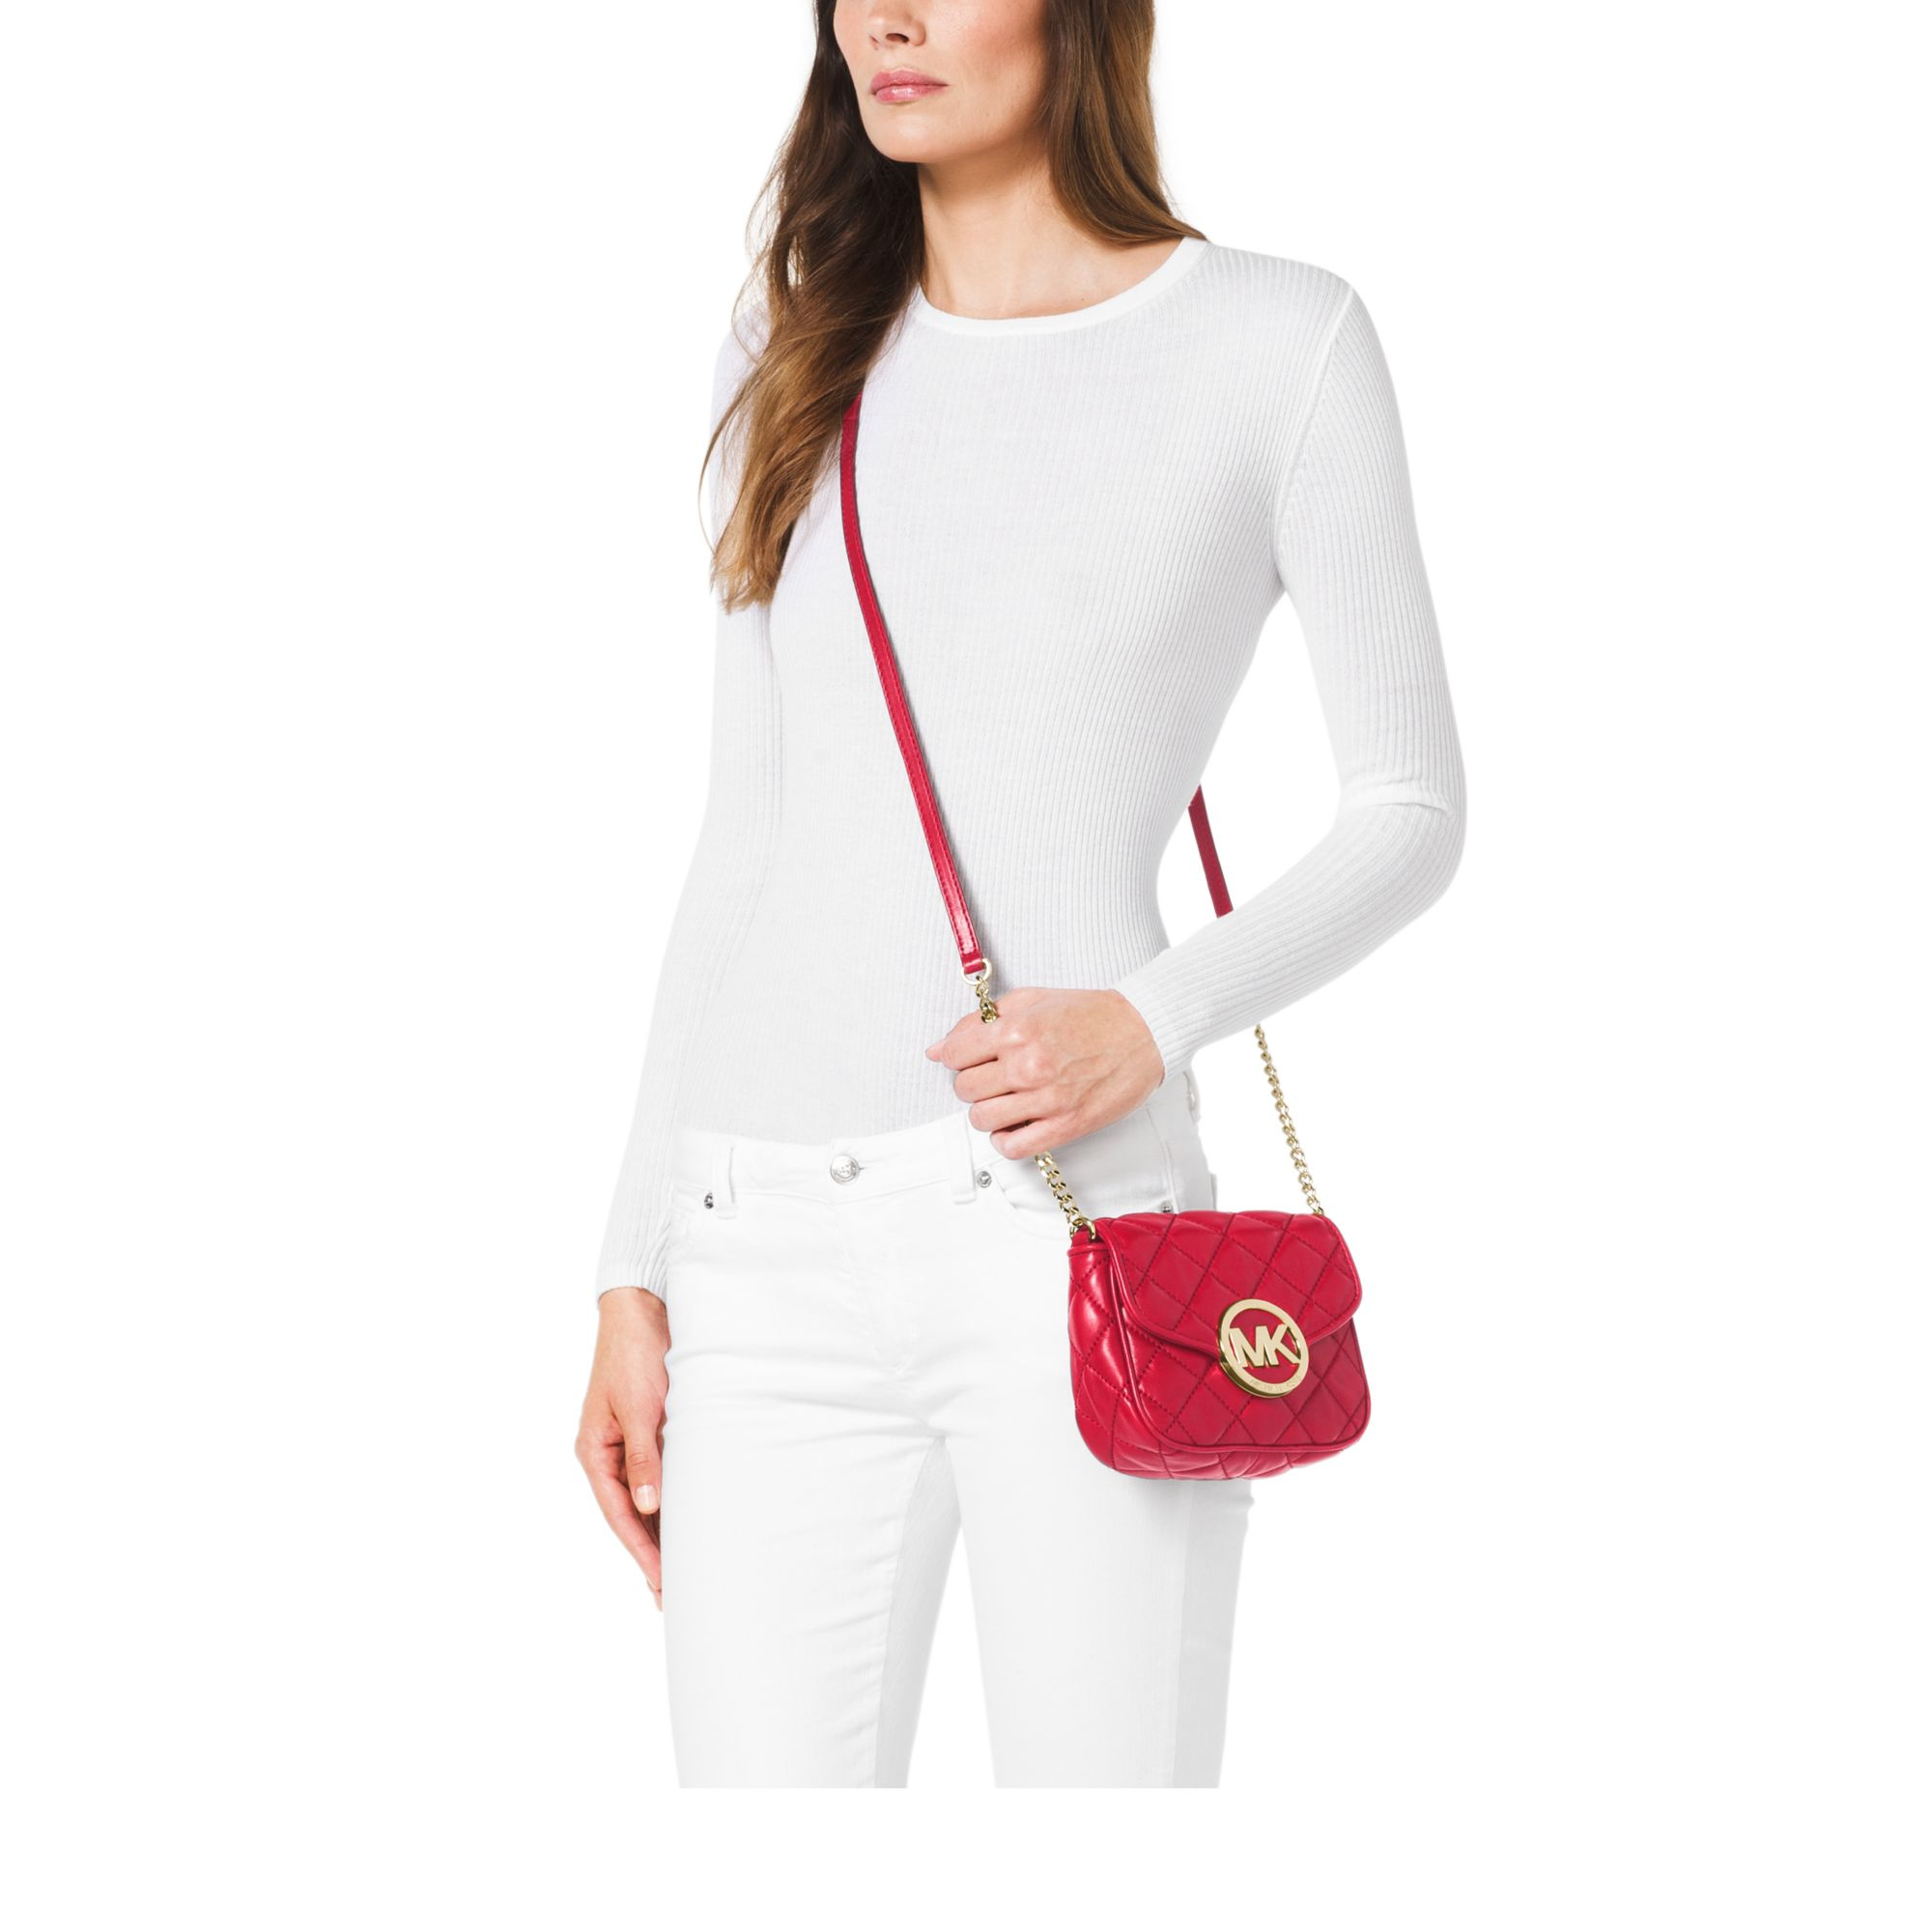 Lyst - Michael kors Fulton Quilted-leather Crossbody in Red : michael kors small fulton quilted crossbody - Adamdwight.com